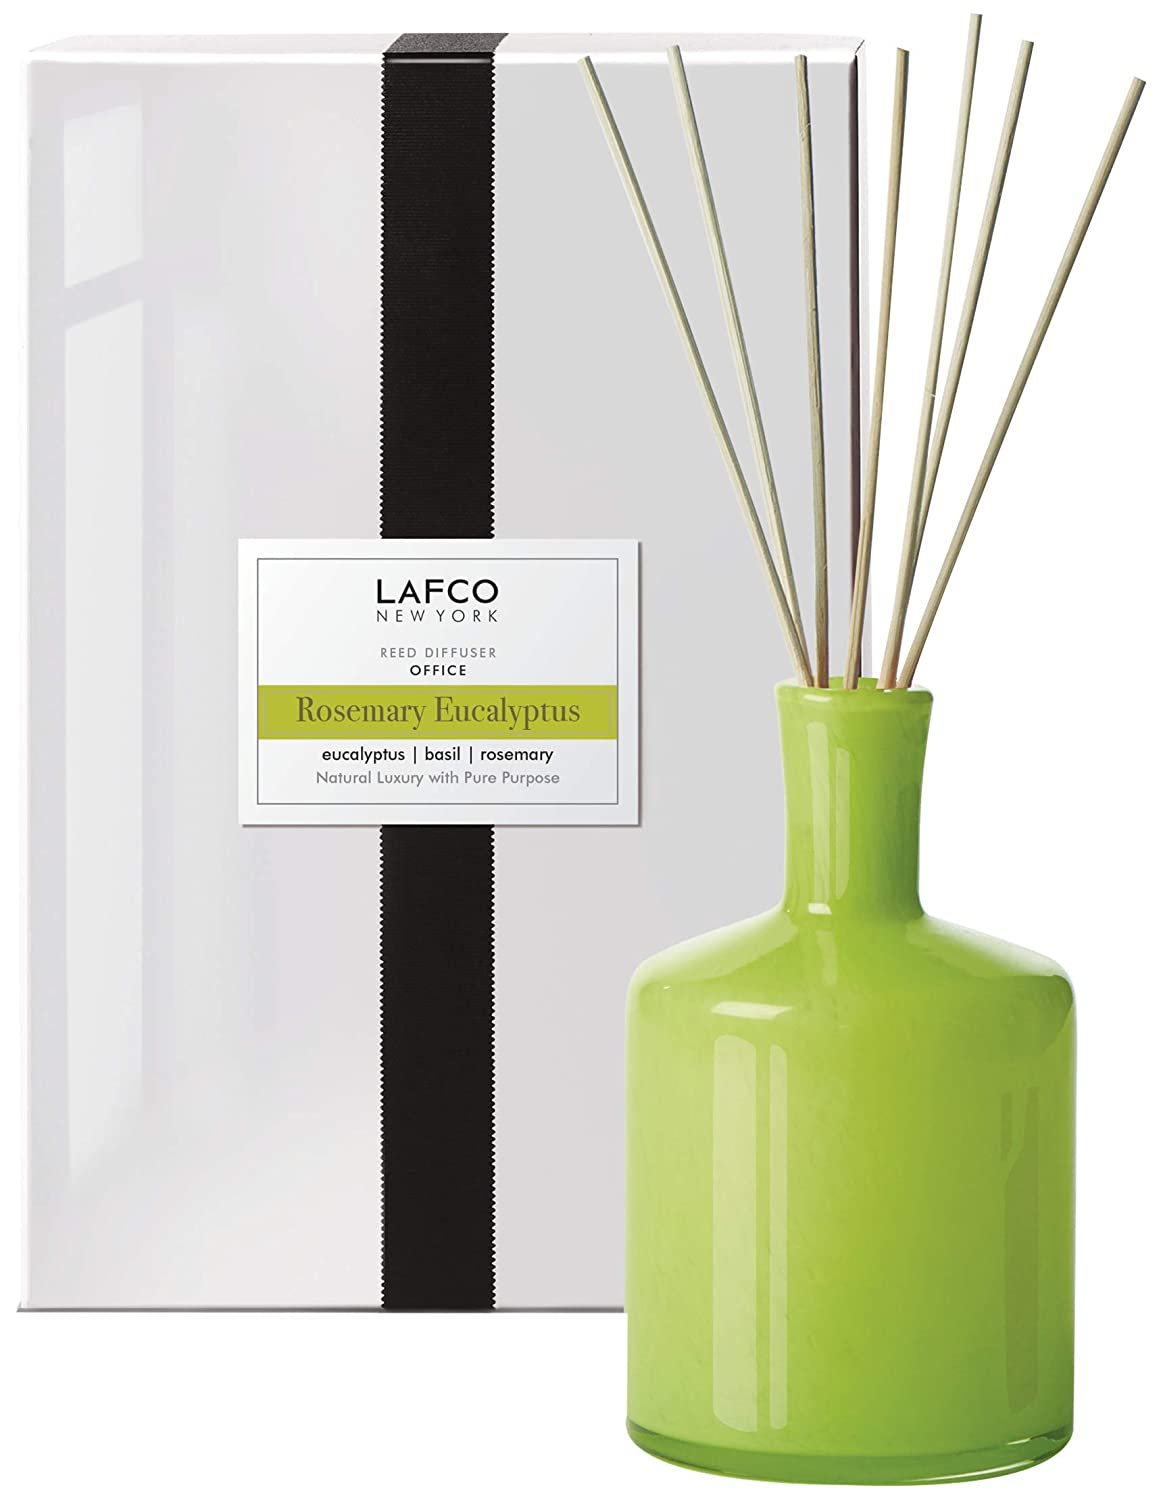 LAFCO Reed Diffuser, Office Rosemary Eucalyptus, 15 Fl Oz